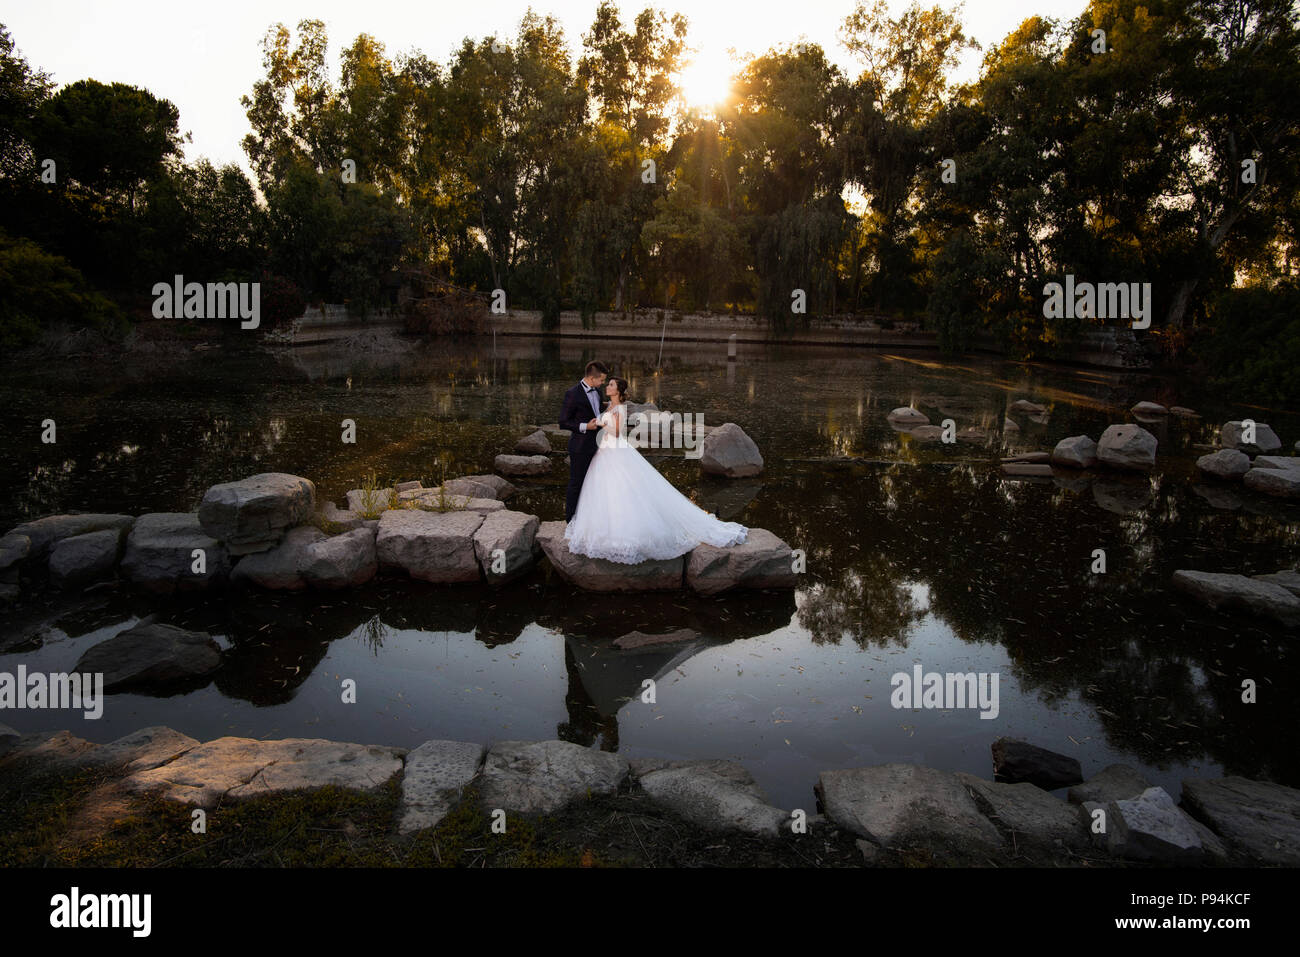 Bride and groom in Ancient city Ephesus ruins Celcus library wedding ceremony in ancient city ruins - Stock Image